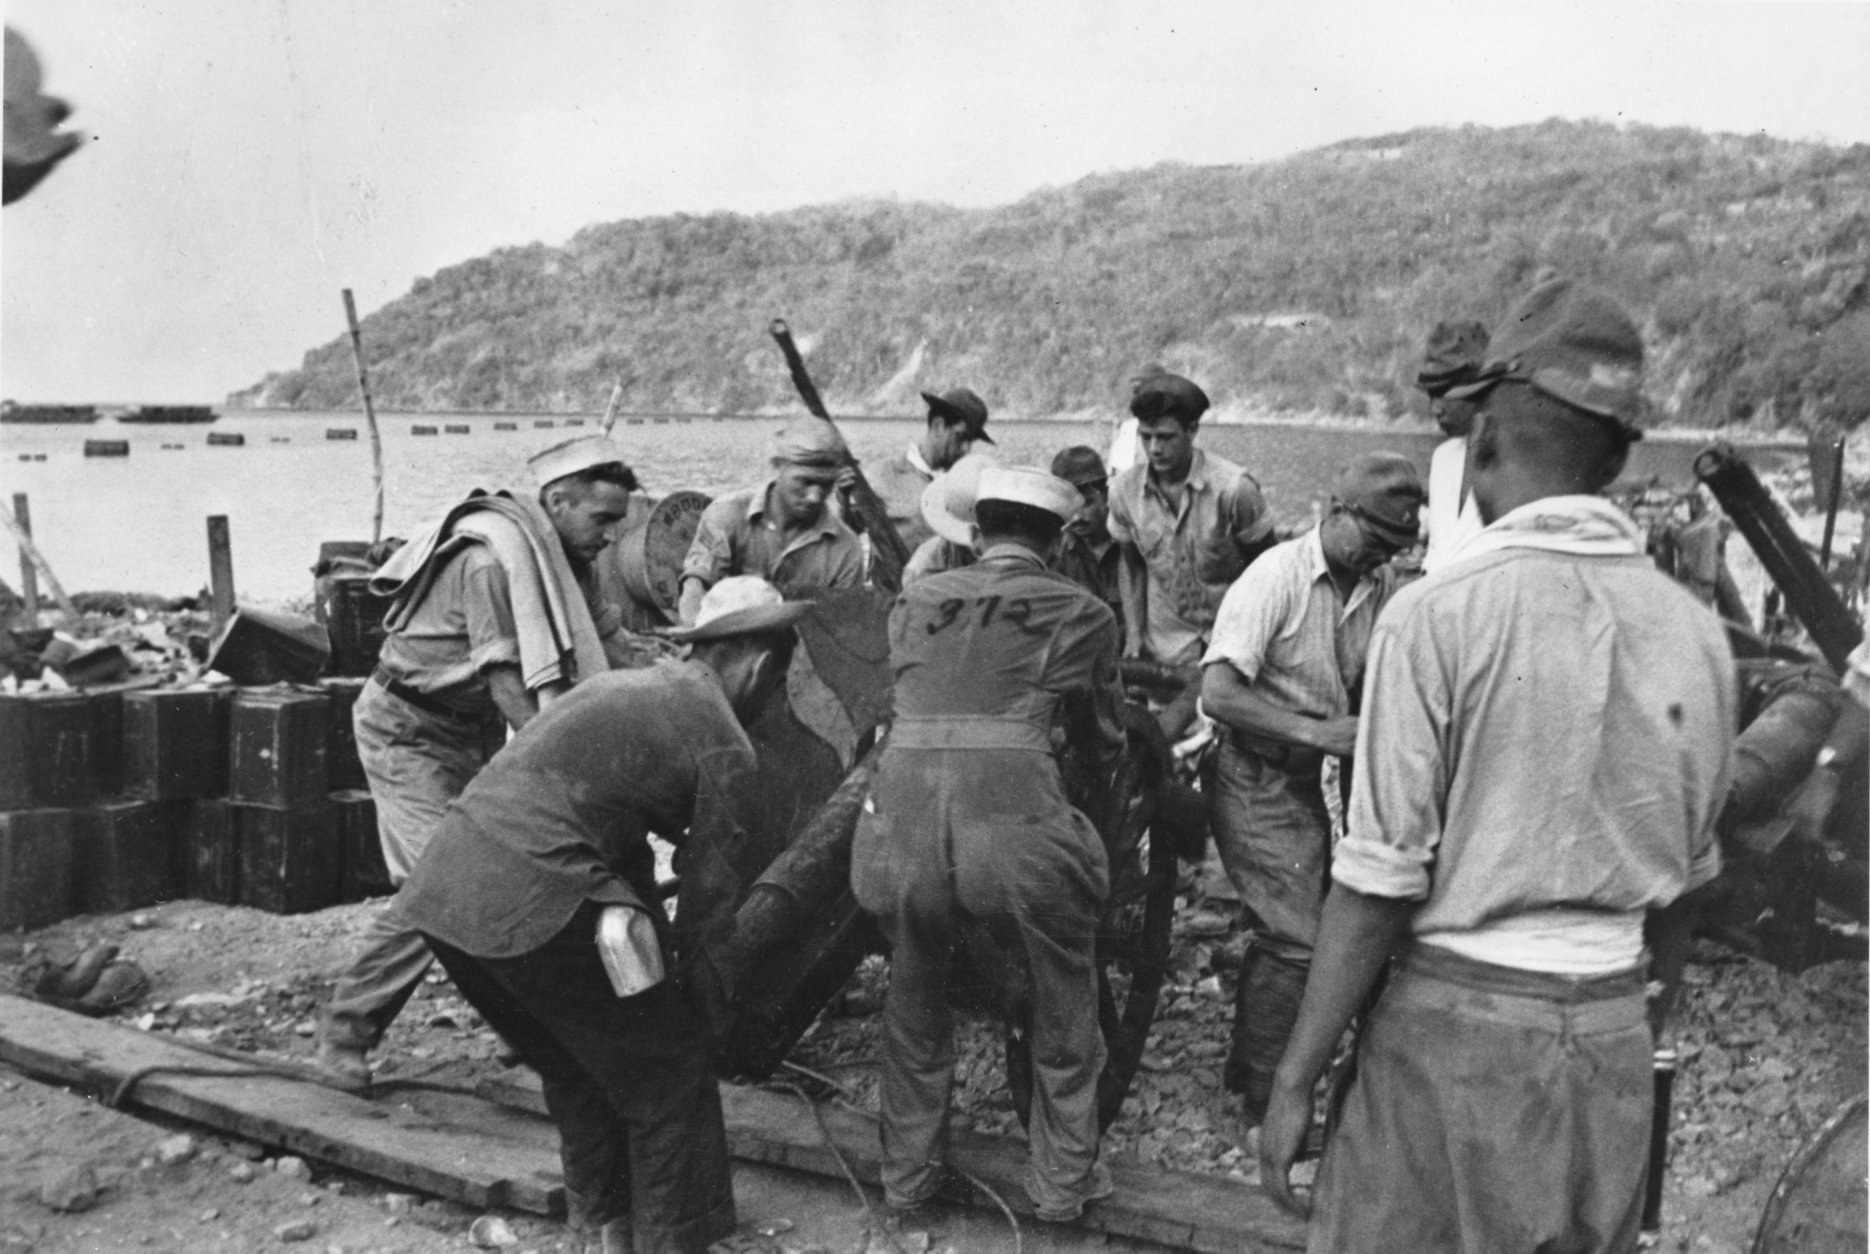 According to the U.S. Army, U.S. Prisoners of War emplace a mountain gun under Japanese guard on the south shore of Corregidor, Philippines. This undated photo was captured from the Japanese during World War II. (AP Photo)